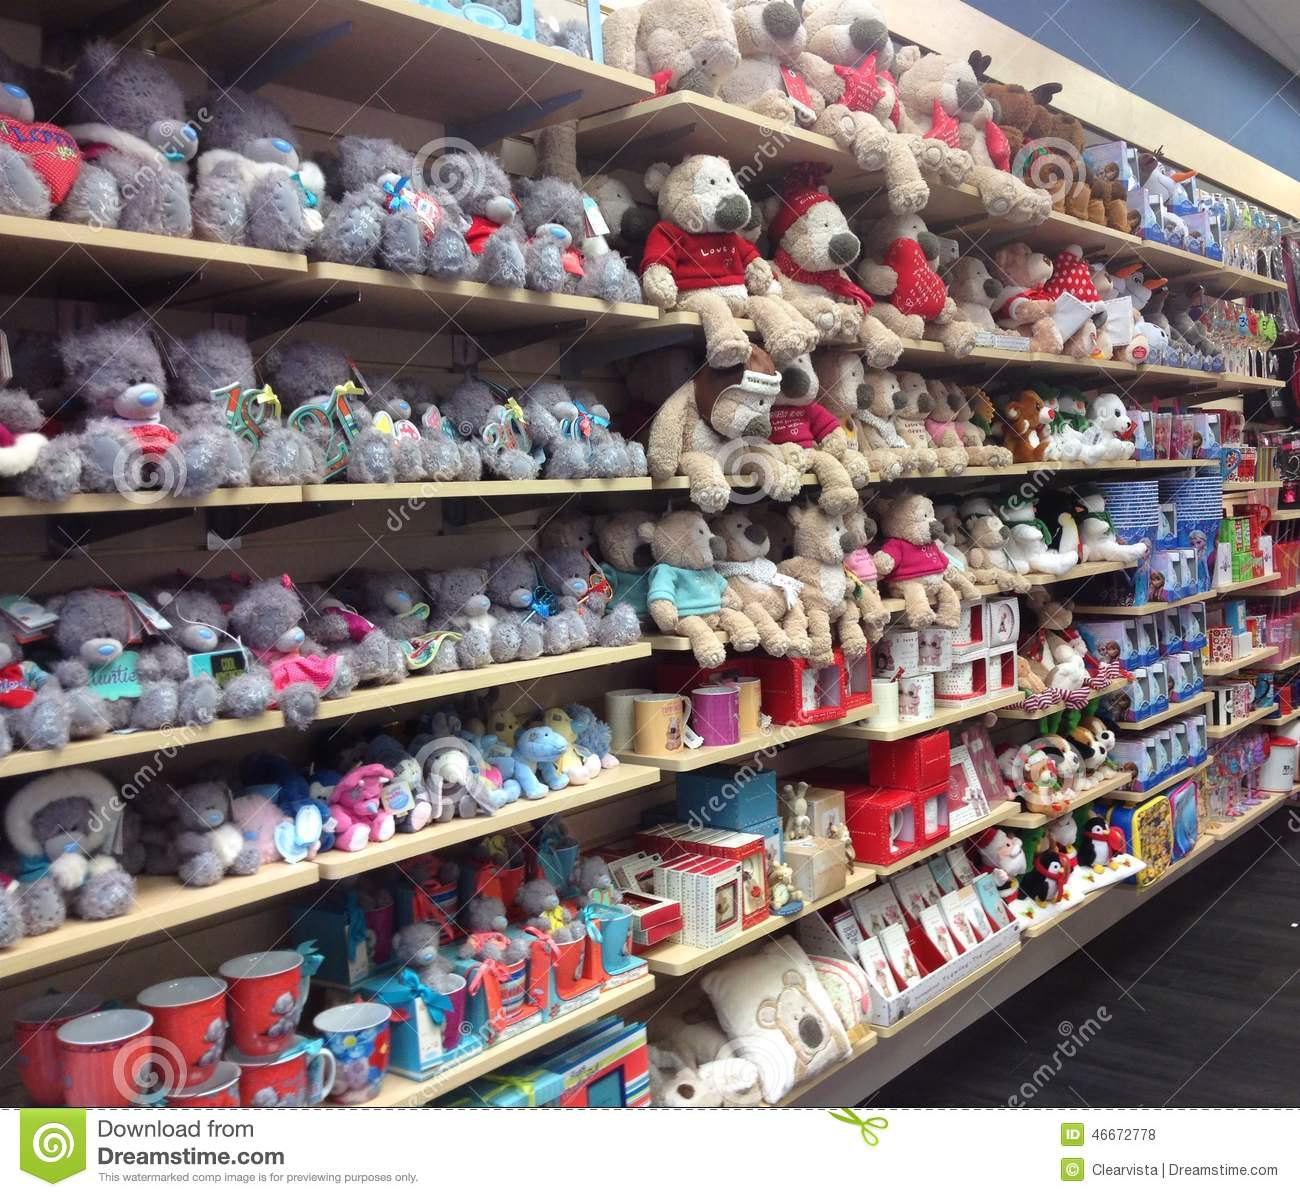 soft toys including bears on sale in a toy shop mr no pr no 0 318 0